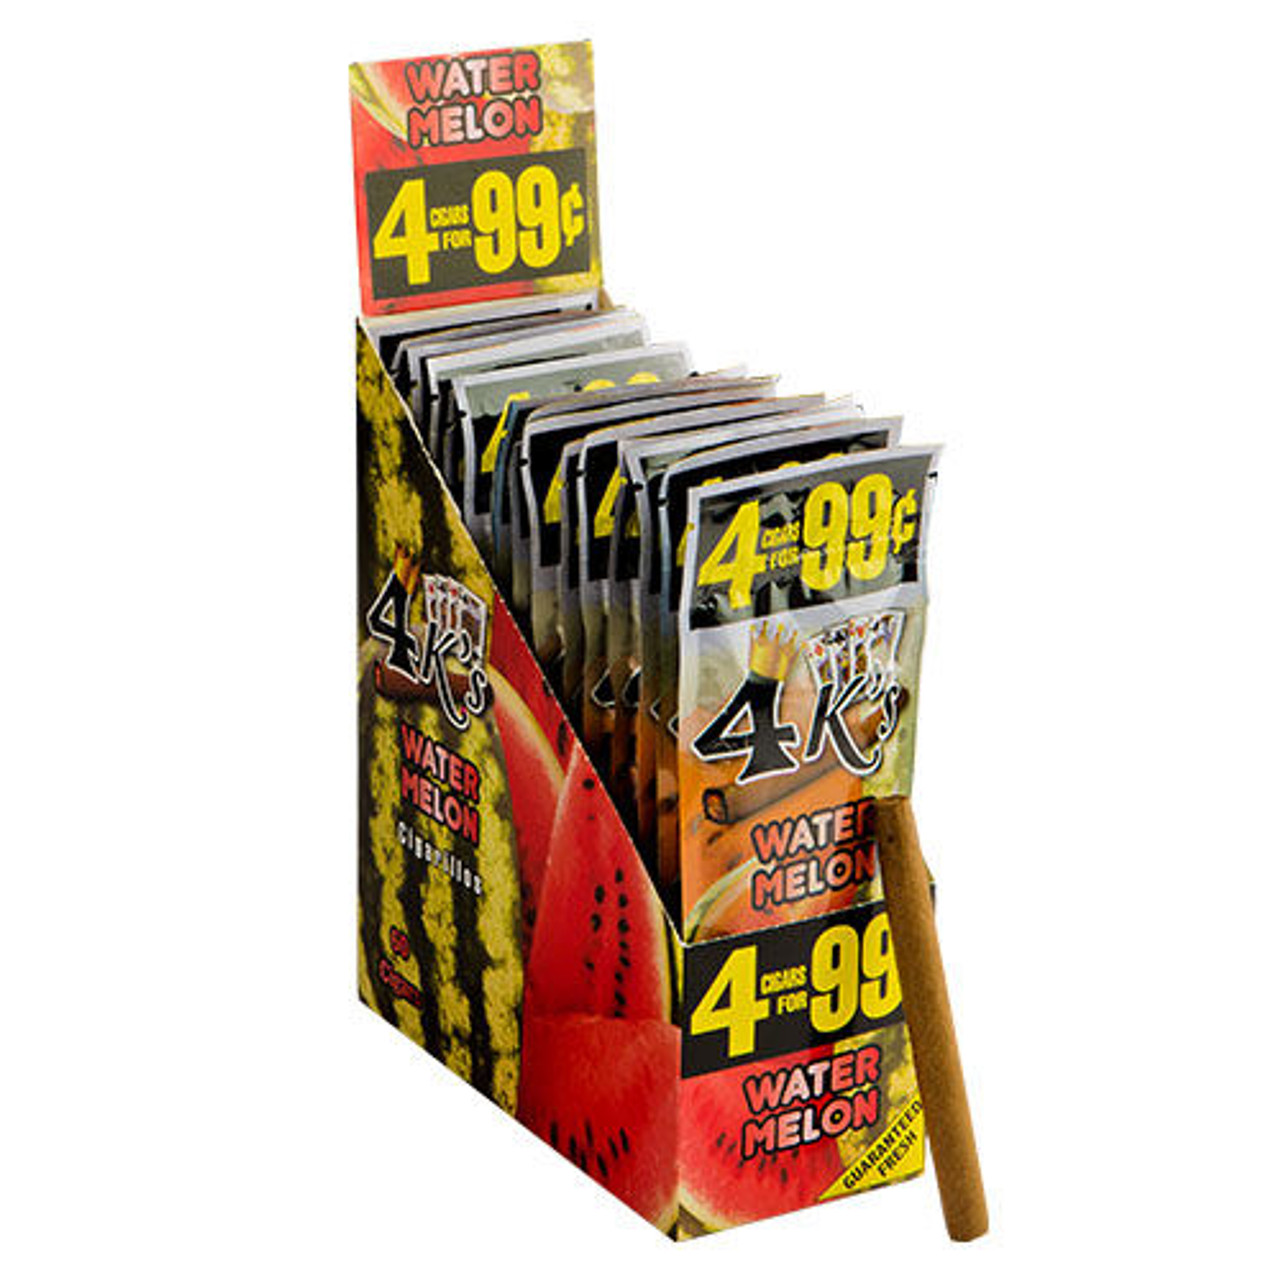 Good Times 4 K's Cigarillos Watermelon Cigars - 4.25 x 28 (15 Packs of 4 (60 Total))